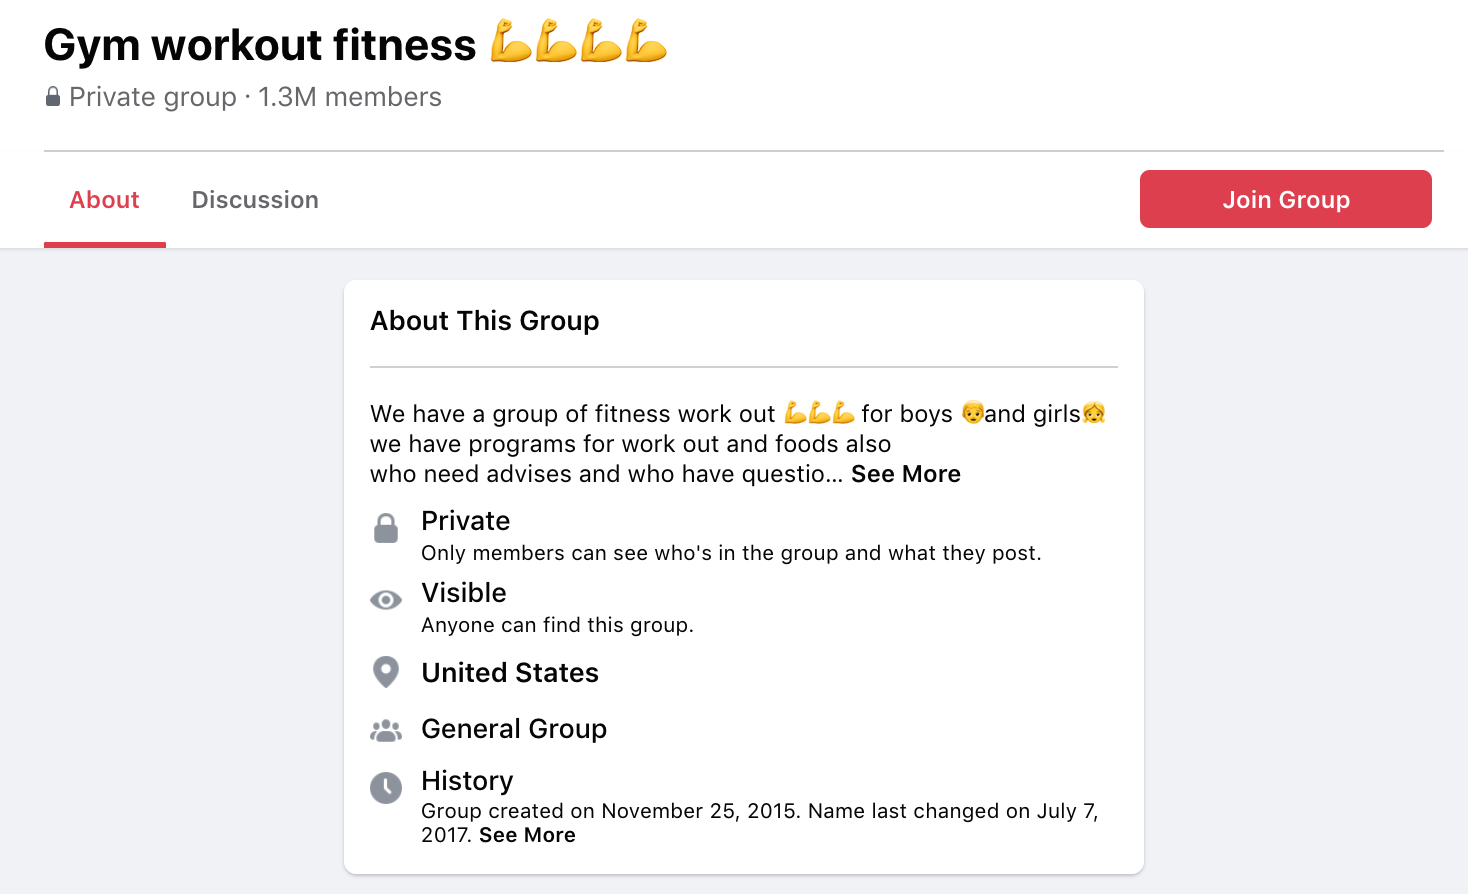 facebook group gym workout fitness united states